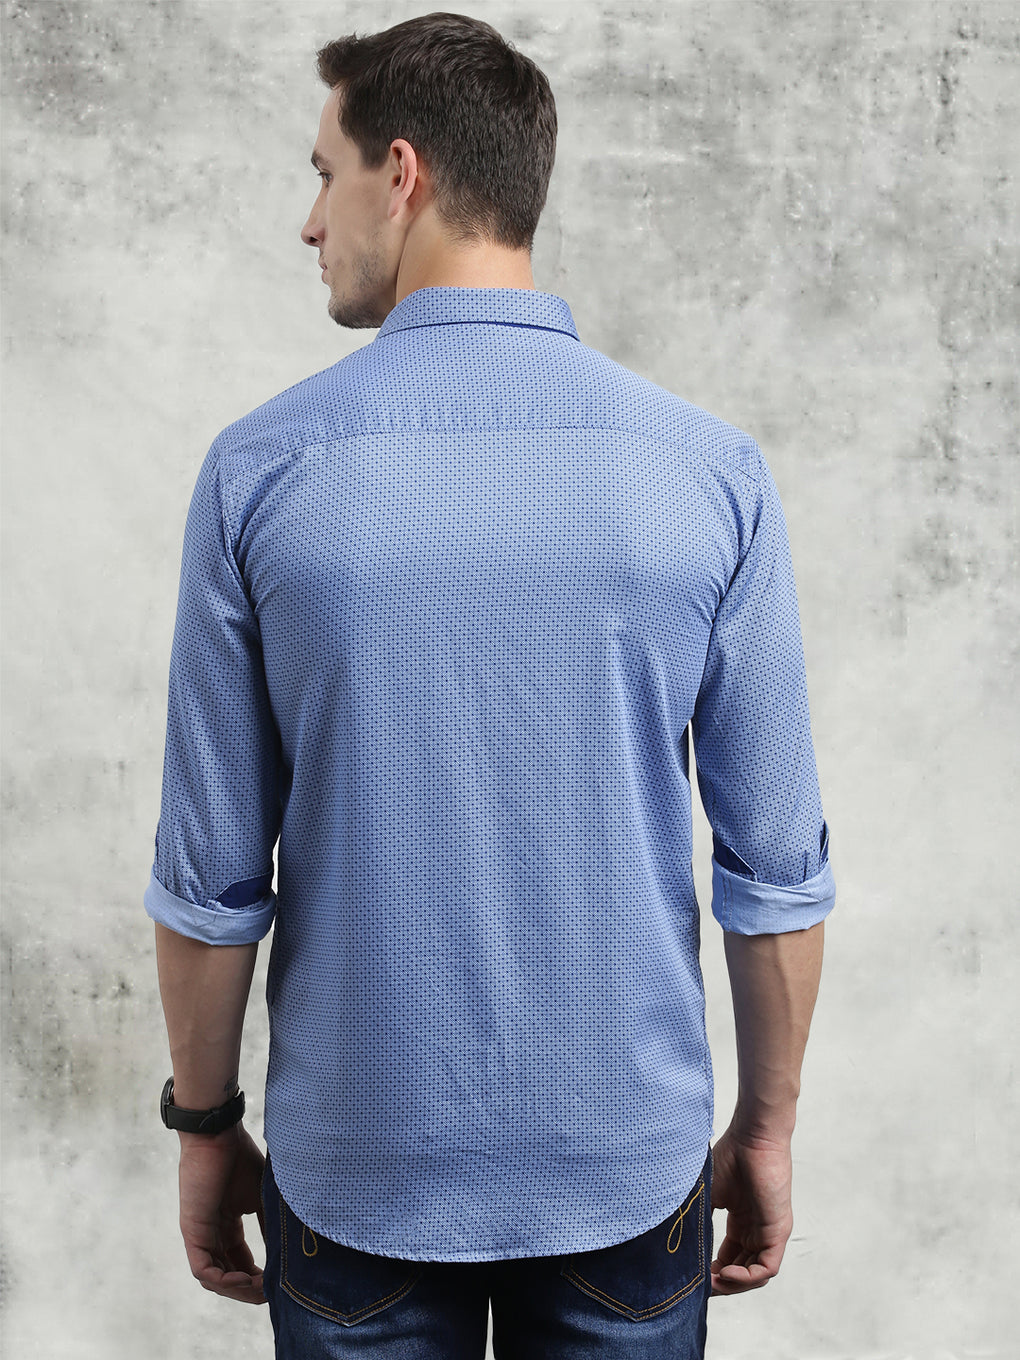 COBB Blue Printed Slim Fit Casual Shirt